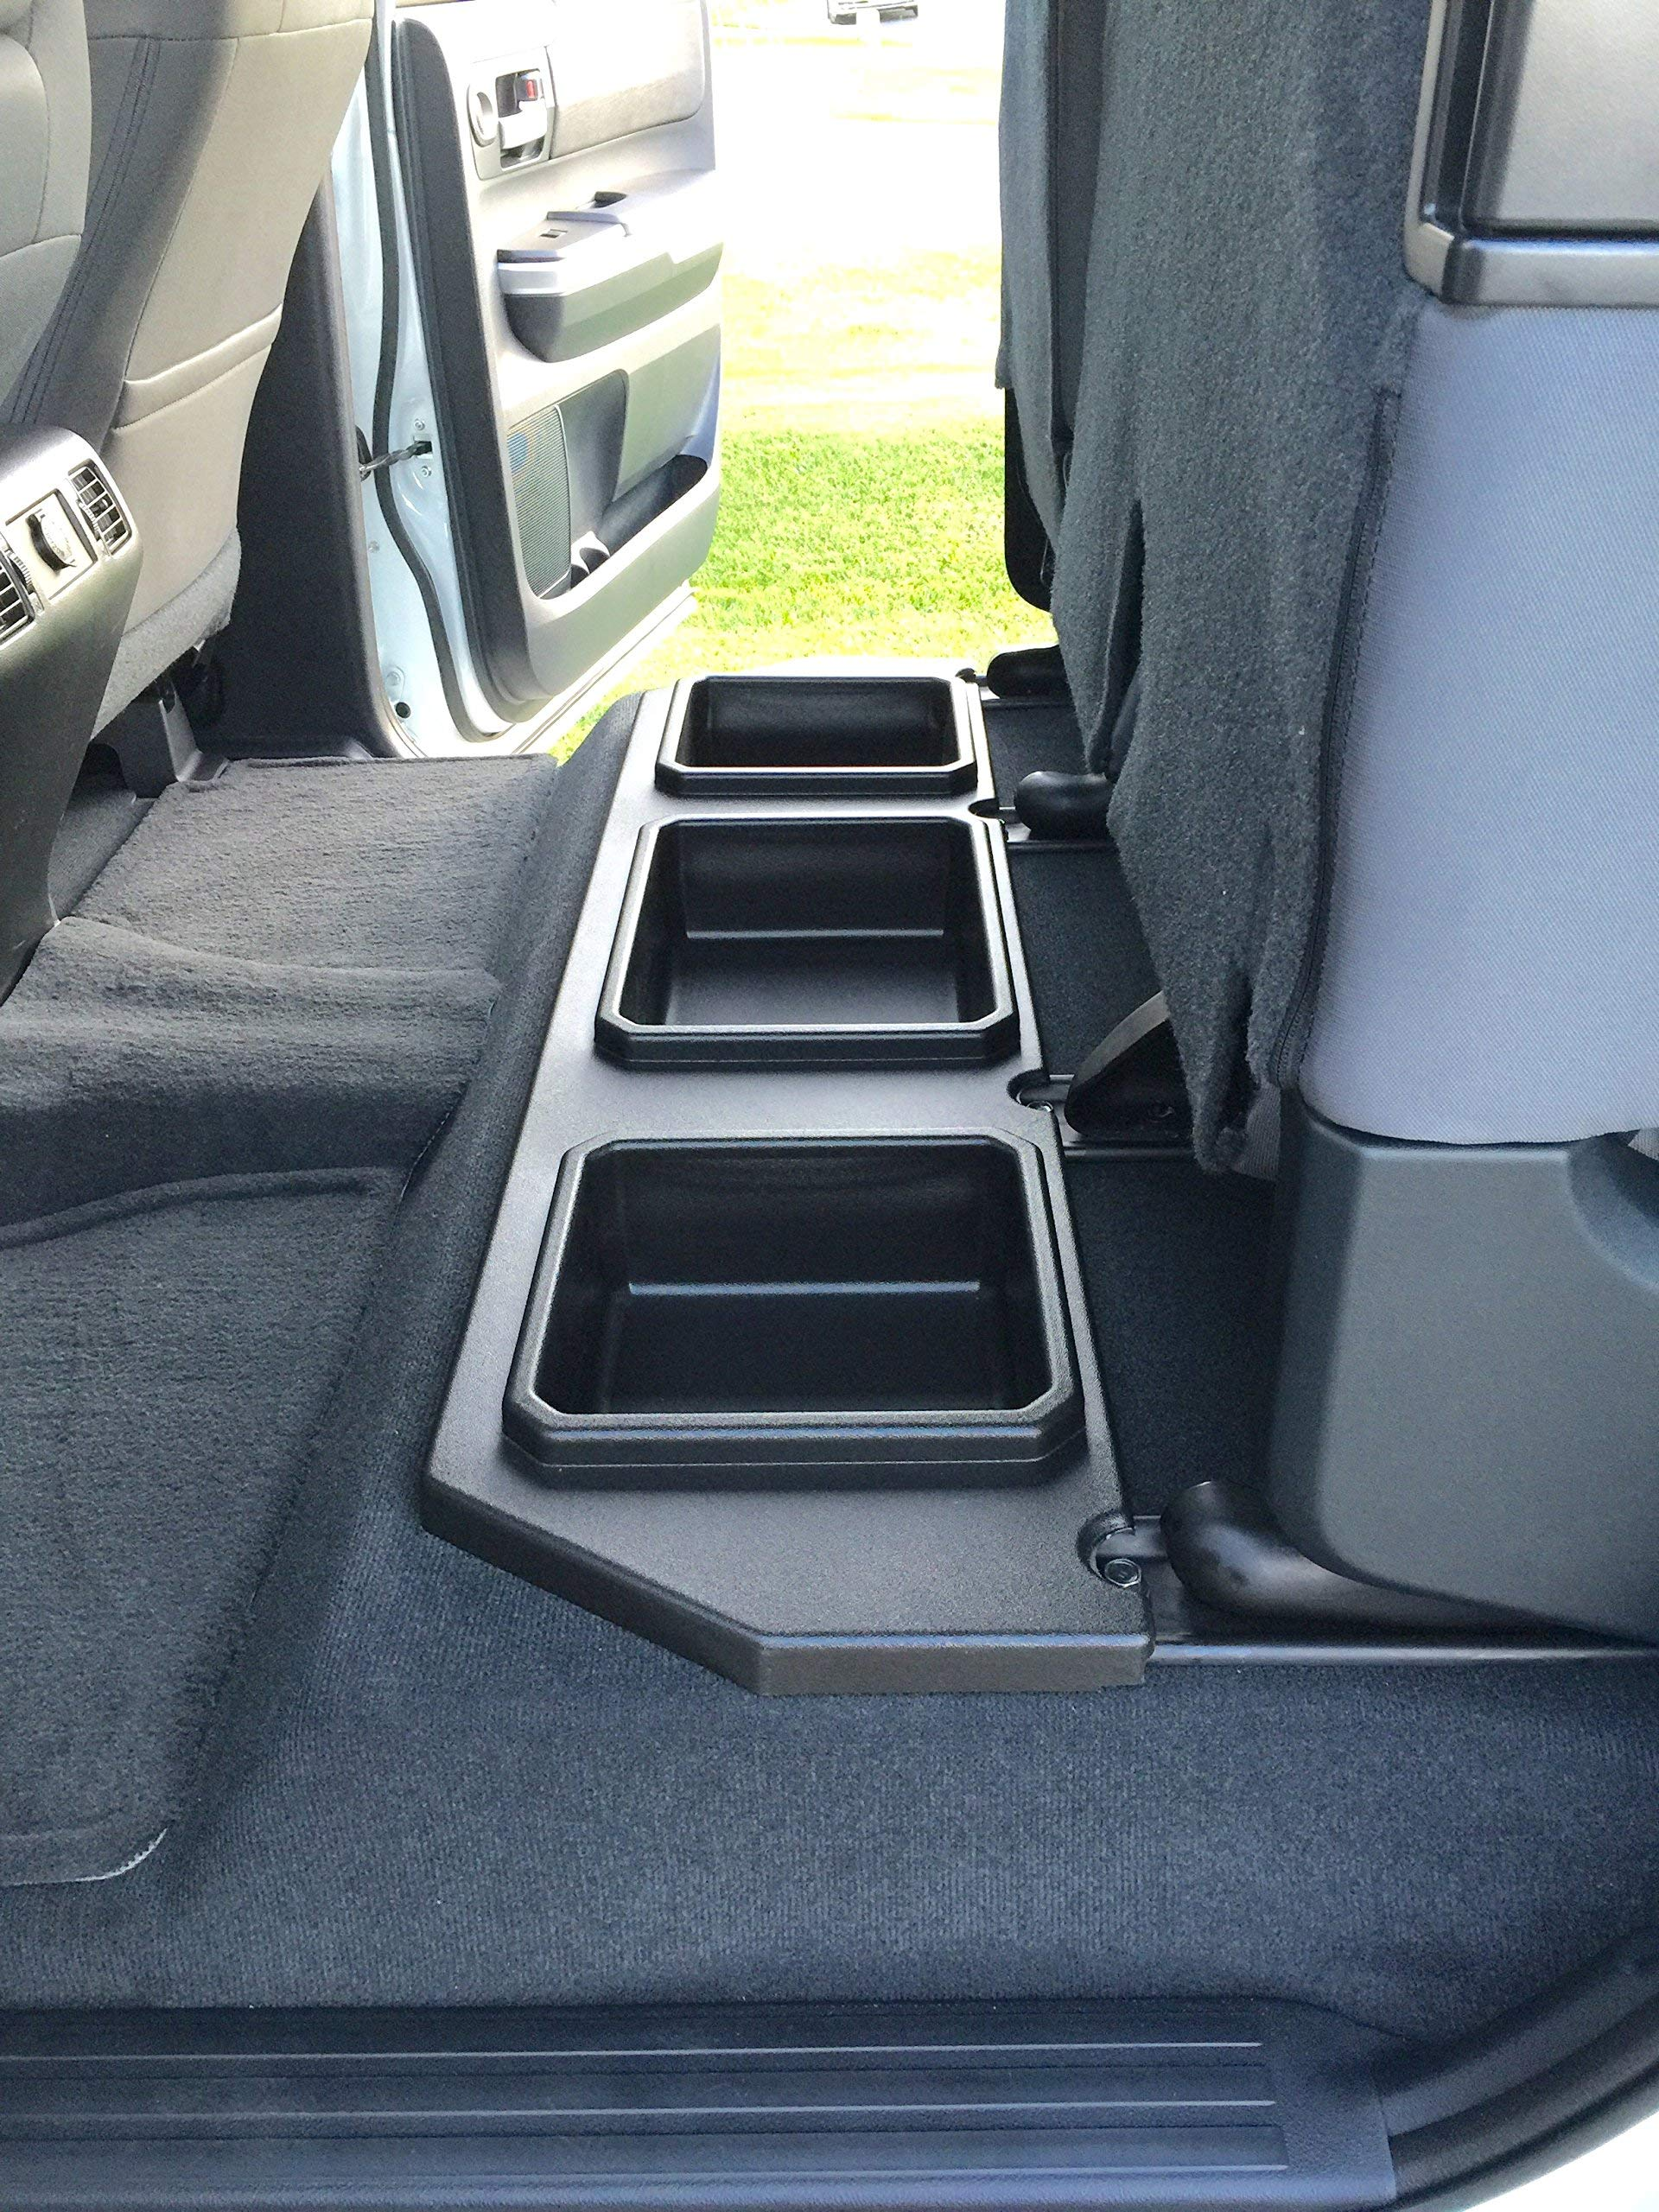 ESP Truck Accessories Plastic Under Seat Storage for 2014-2020 Toyota Tundra CrewMax by ESP Truck Accessories